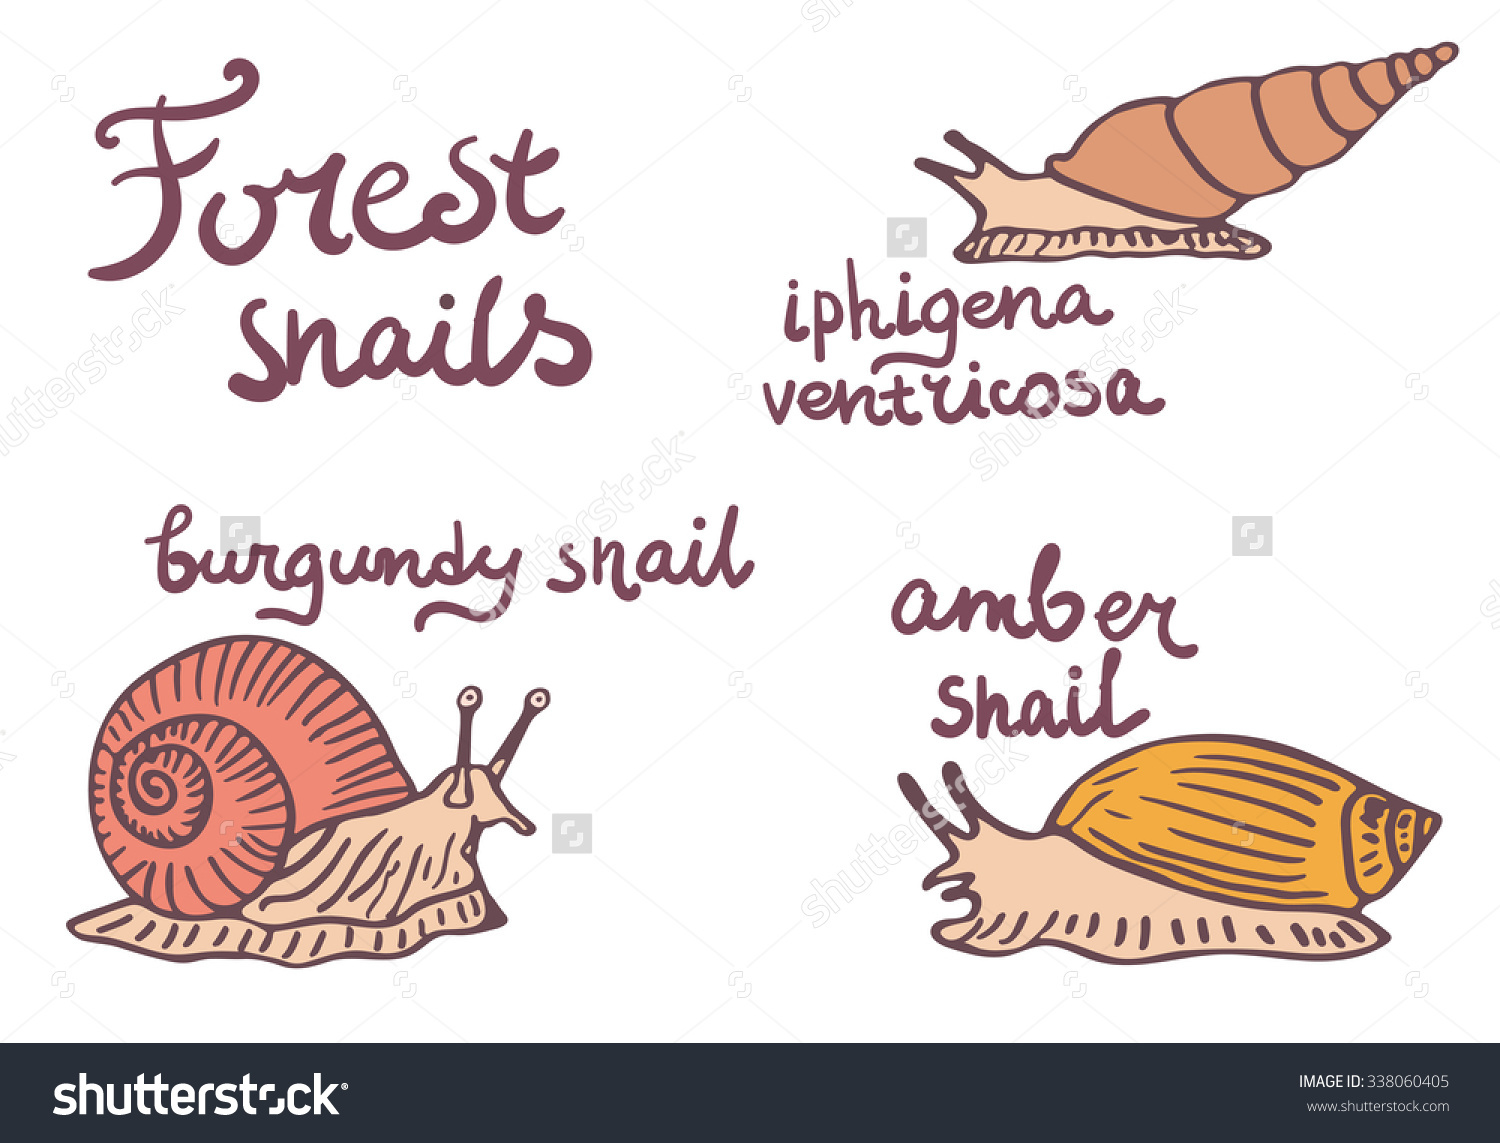 Set Of Forest Snails Isolated Illustrations. Burgundy Snail, Amber.